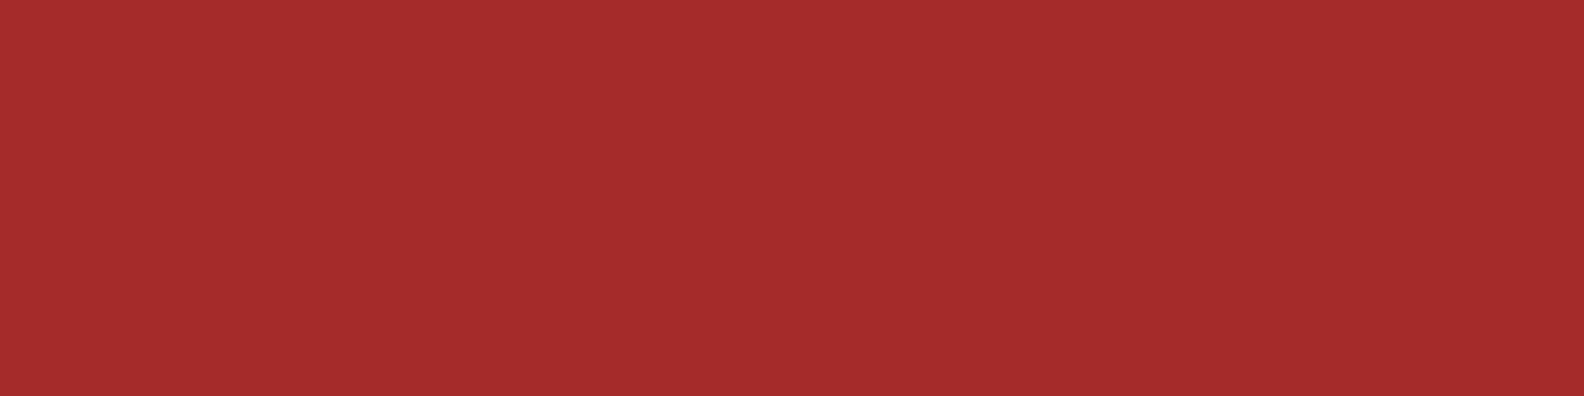 1584x396 Red-brown Solid Color Background